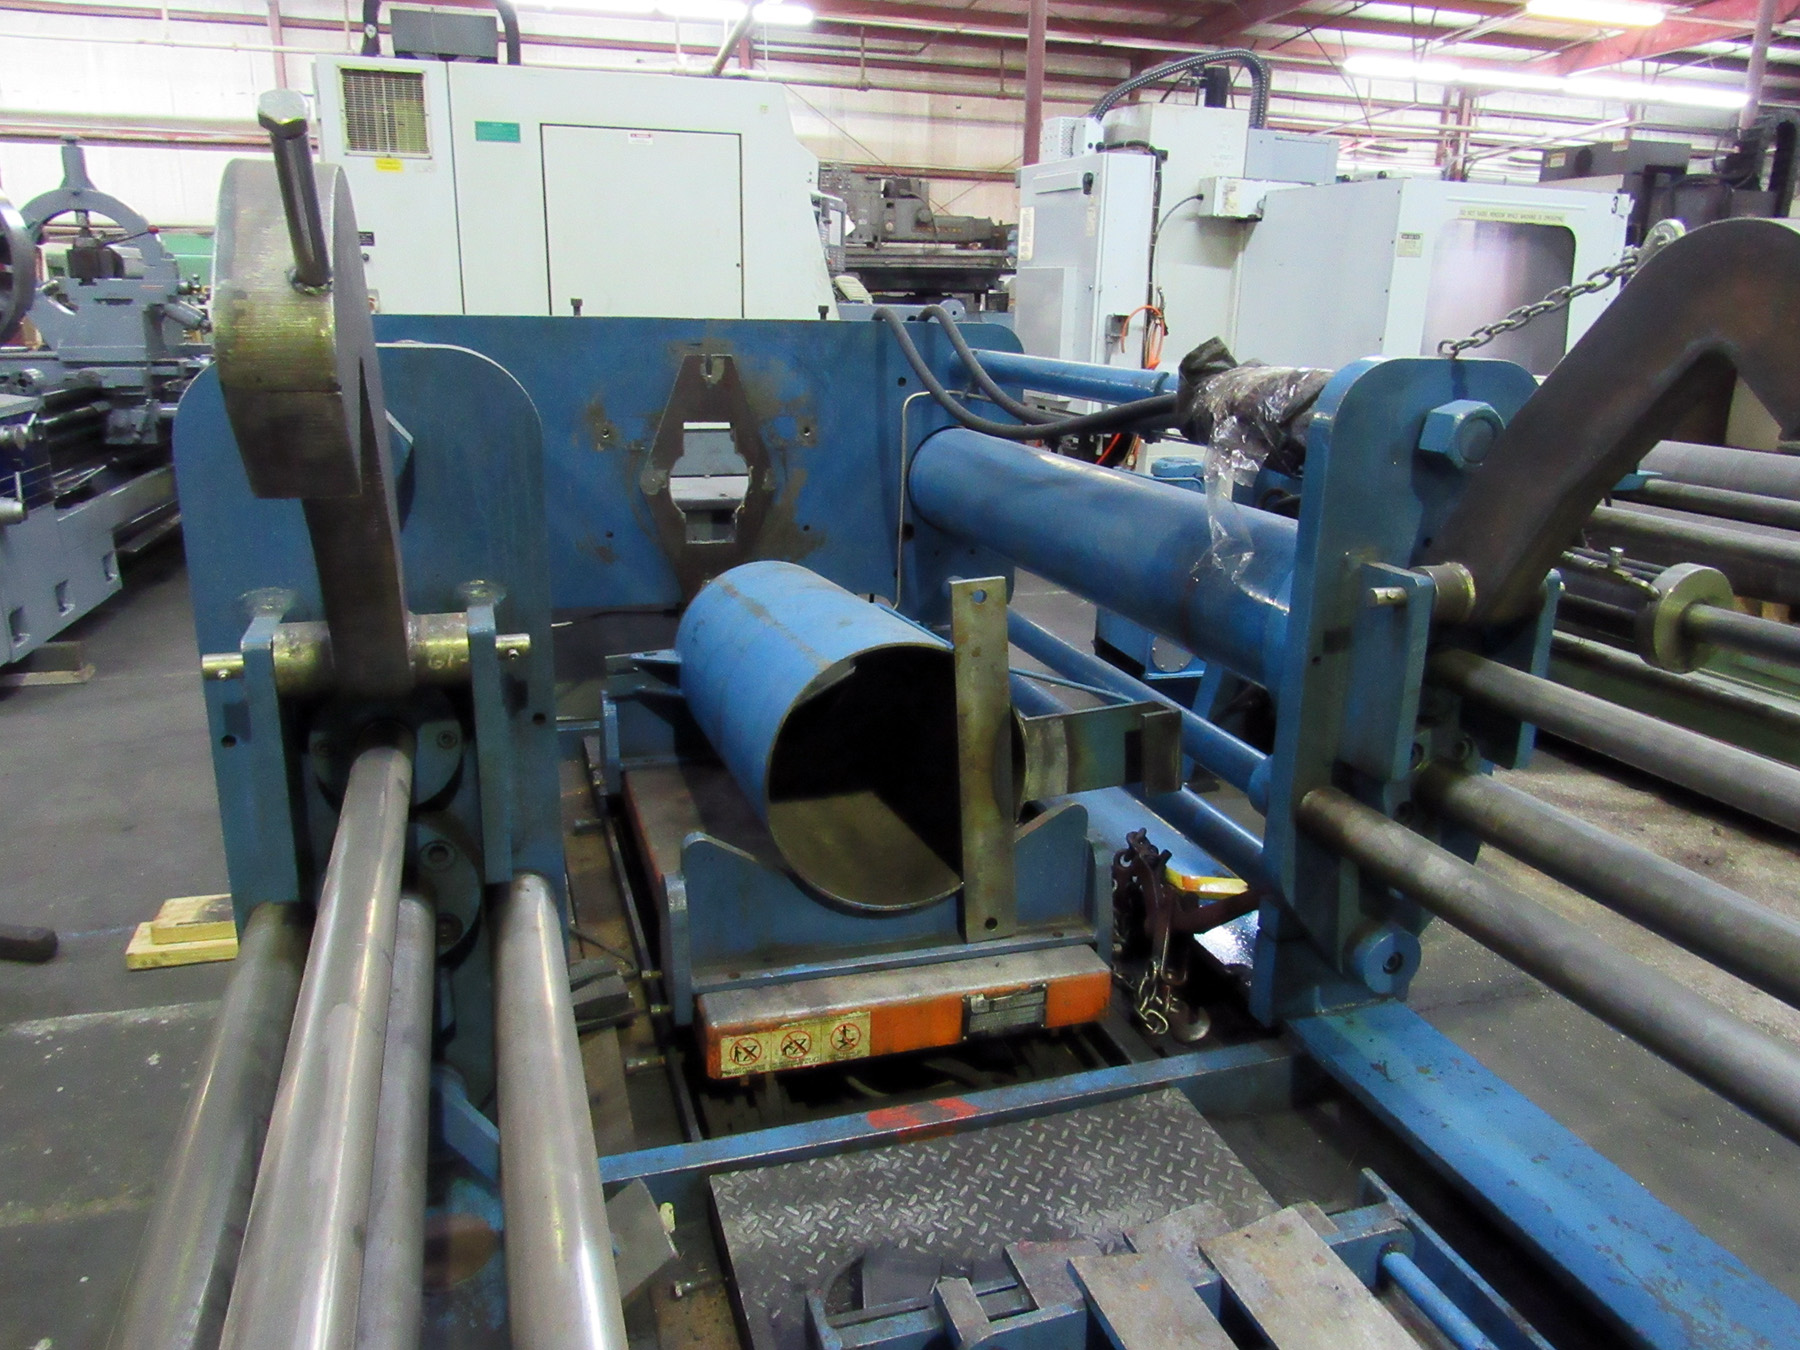 Lot 34 - PUSH/PULL COMPRESSION/FORCING PRESS, Hogan hyd. tank, (2) Presto 6,000 lb. cap. hyd. lift tables,